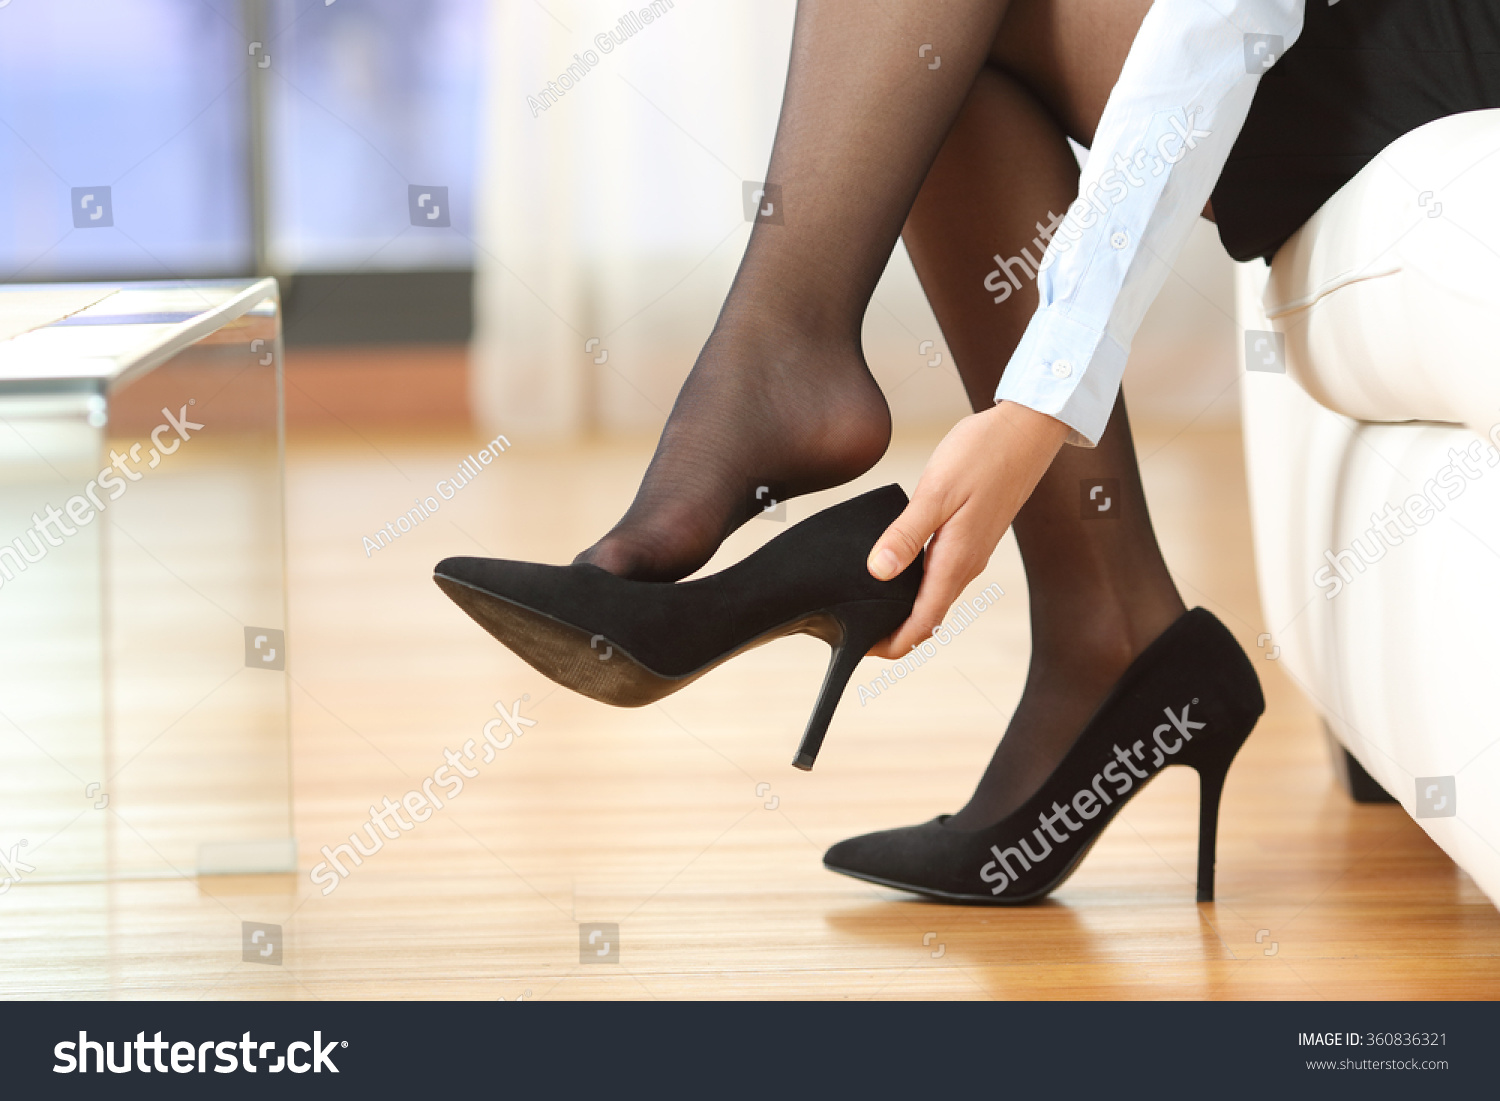 Businesswoman taking off high heels shoes after work at home #360836321